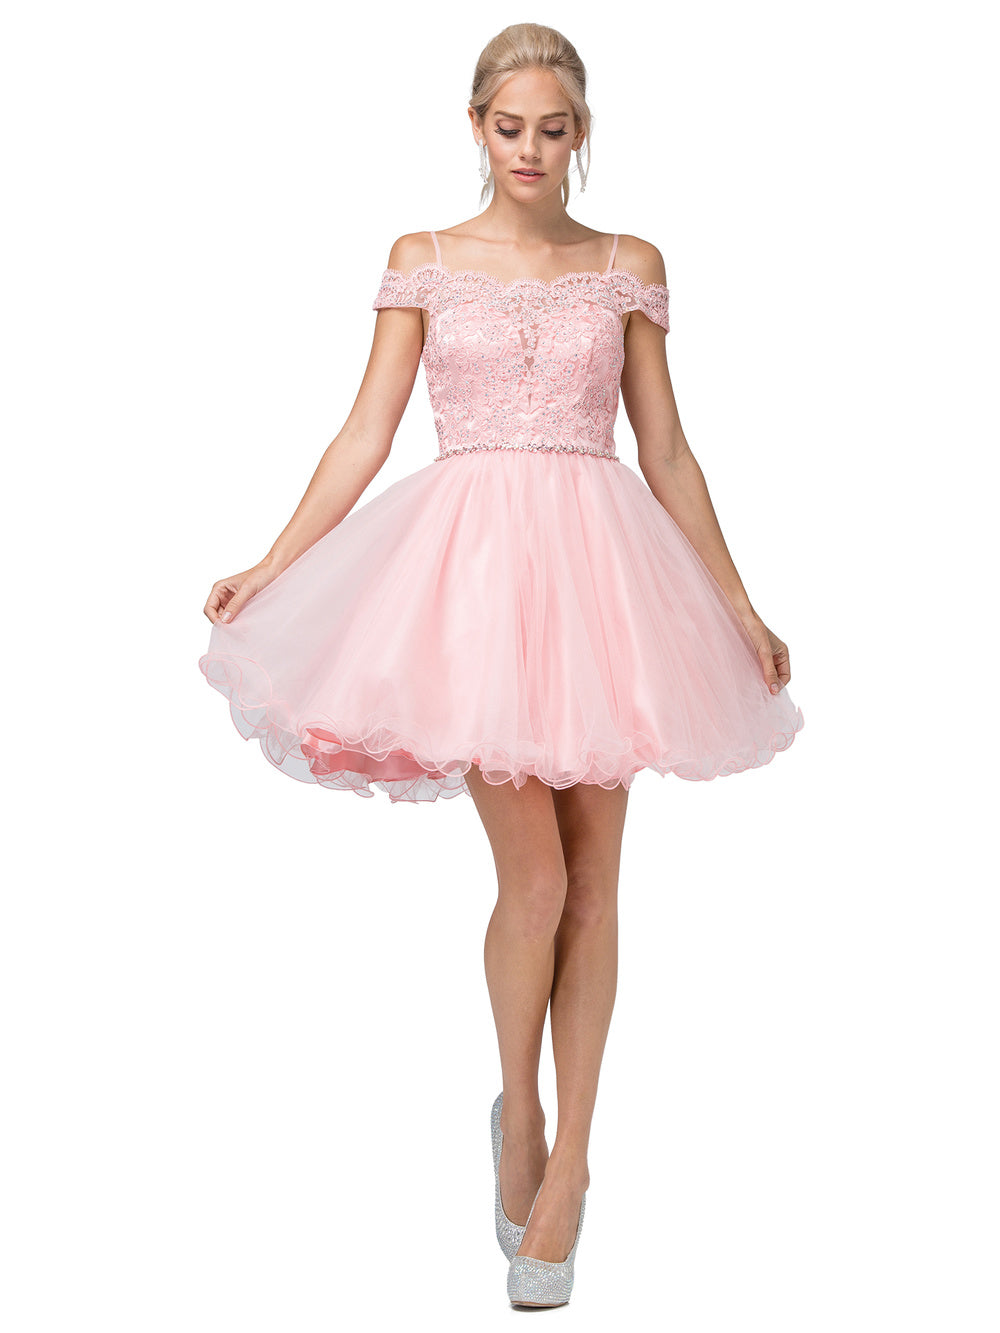 Dancing Queen DQ 3167 - Off the Shoulder Lace top Homecoming Dress with Tulle Skirt & Rhinestone Belt - Diggz Prom